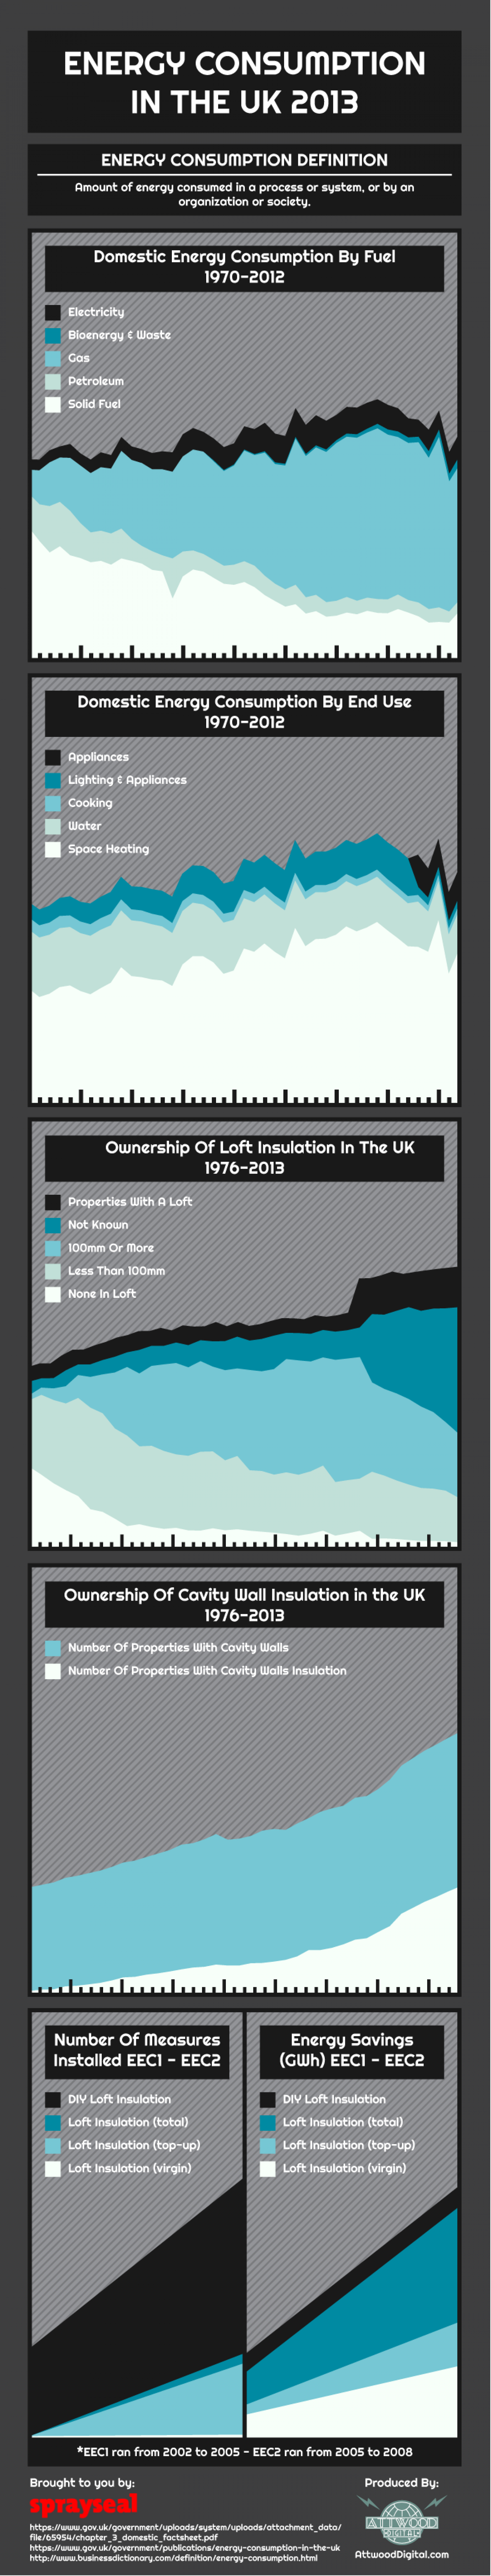 Energy Consumption In The UK 2013 Infographic